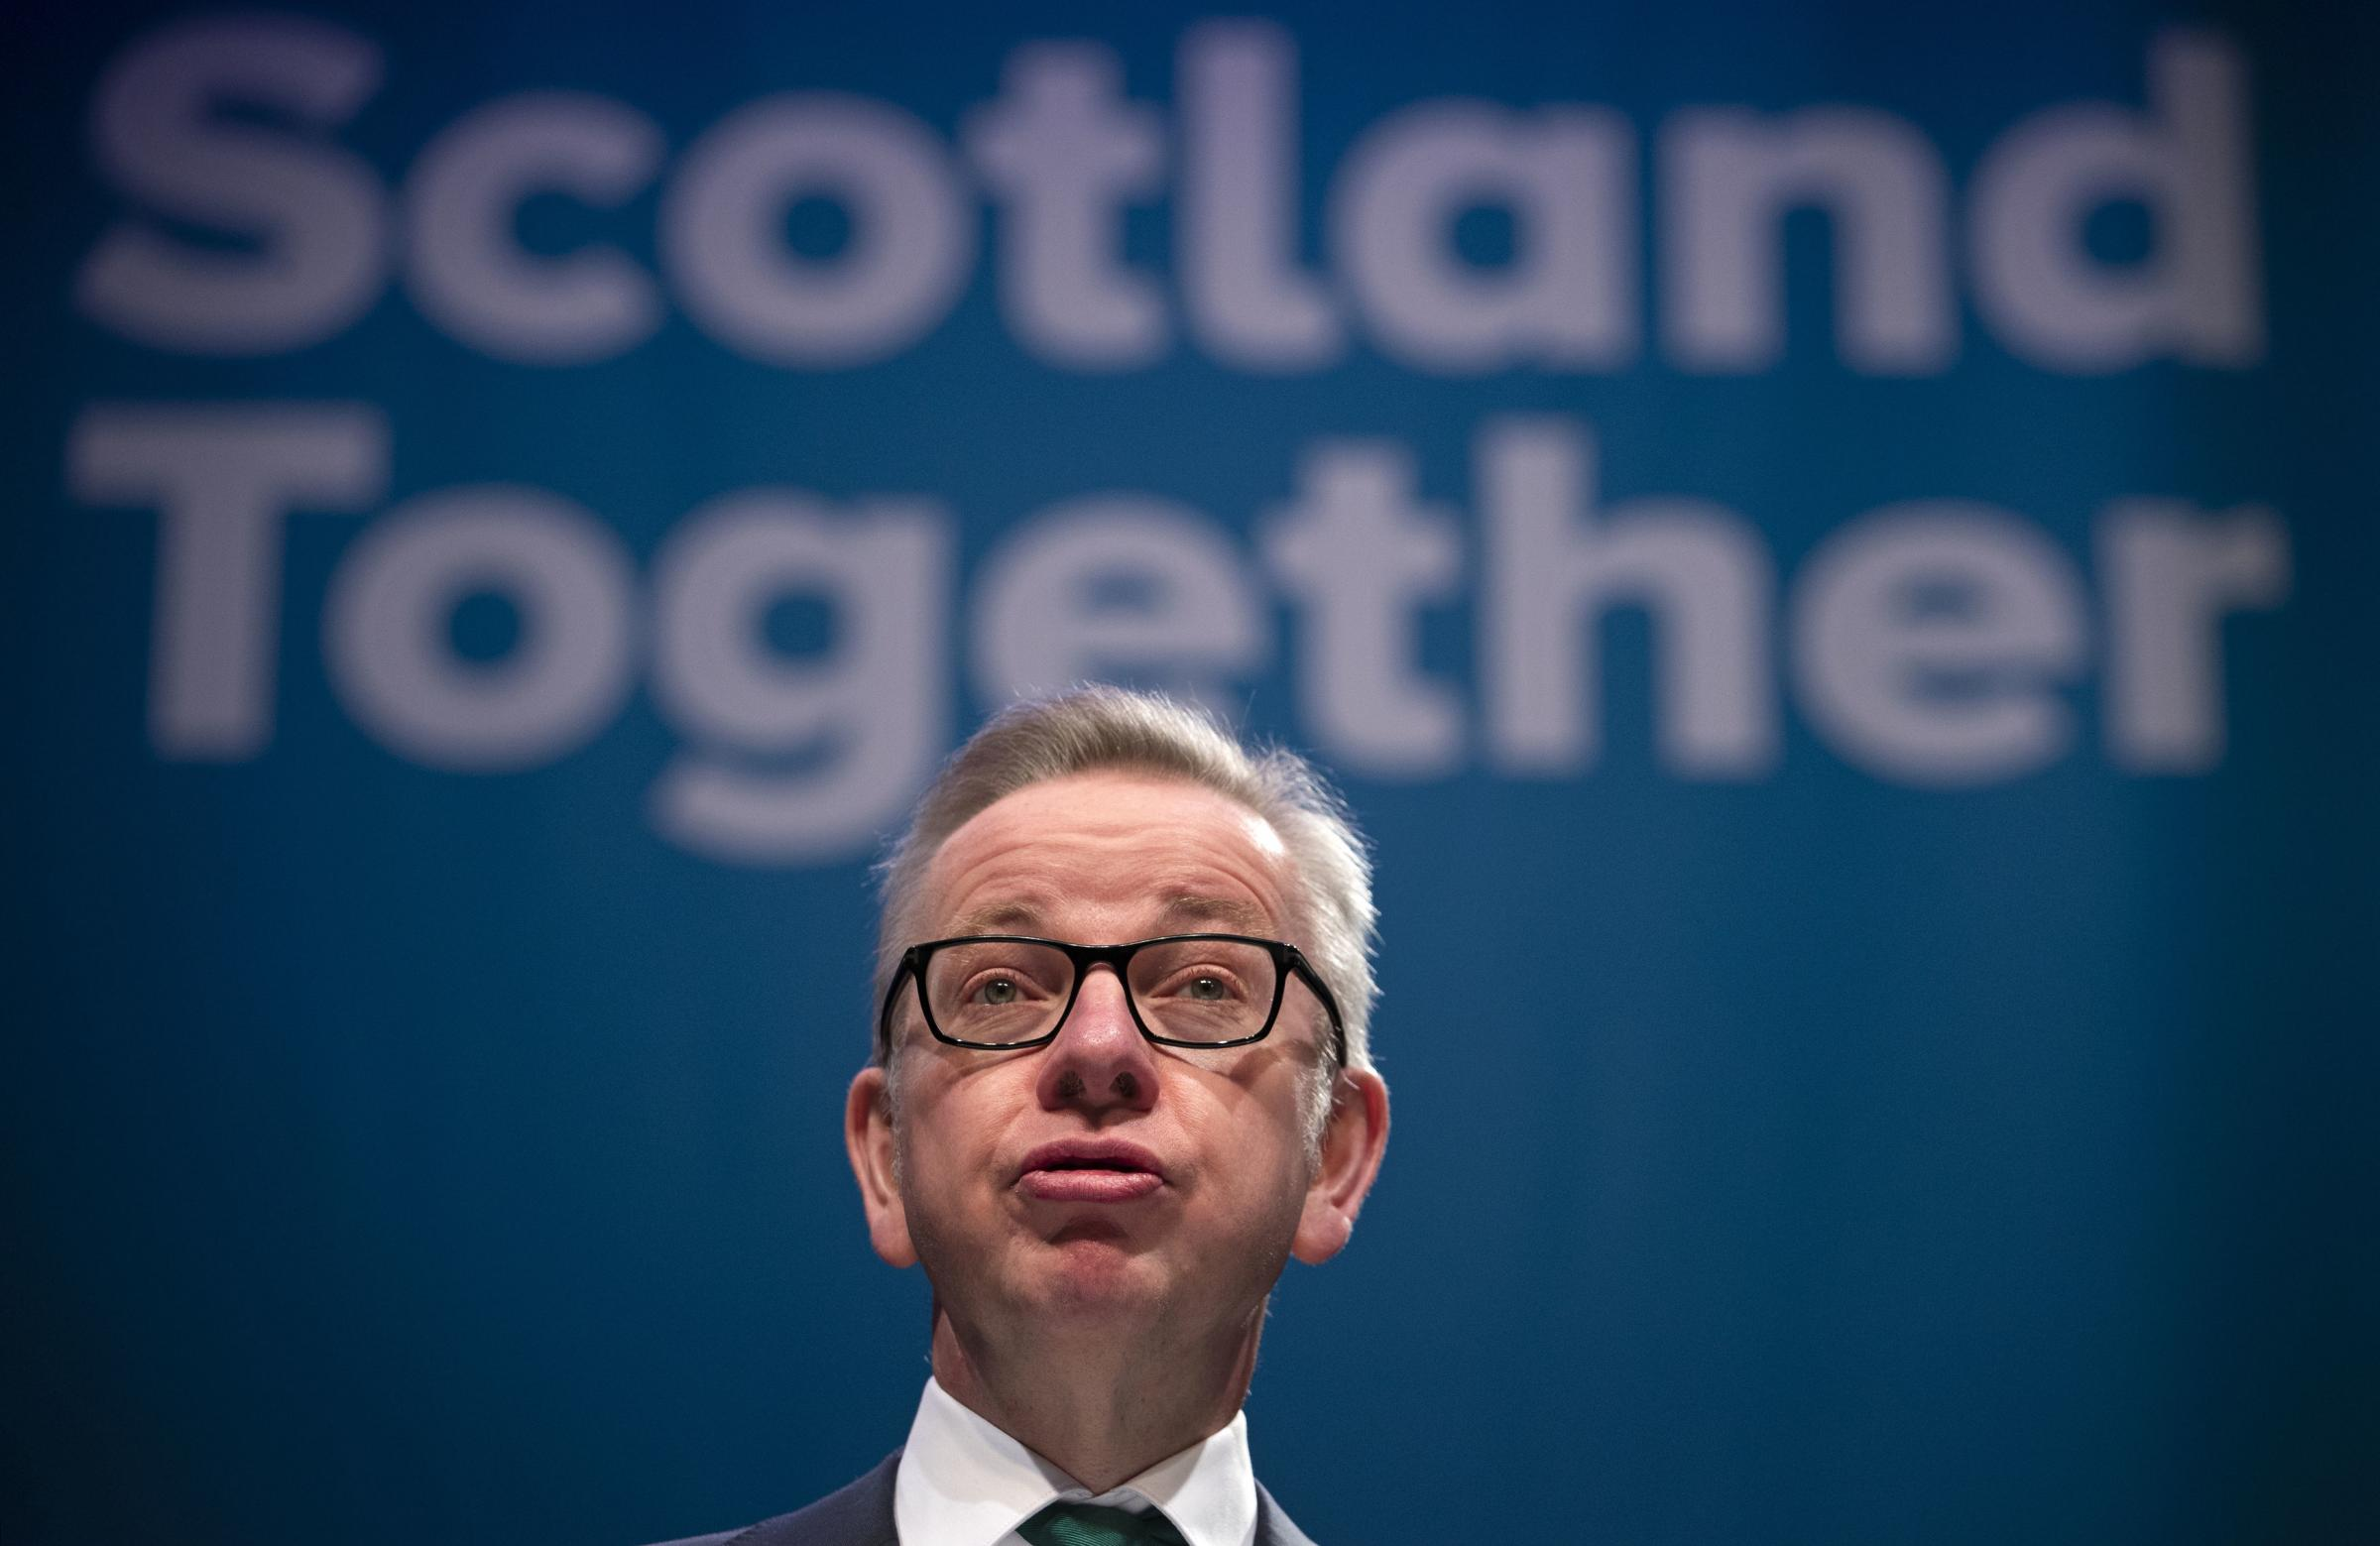 Environment Secretary Michael Gove says it is 'absolutely critical' Scotland has a say on future trade negotiations